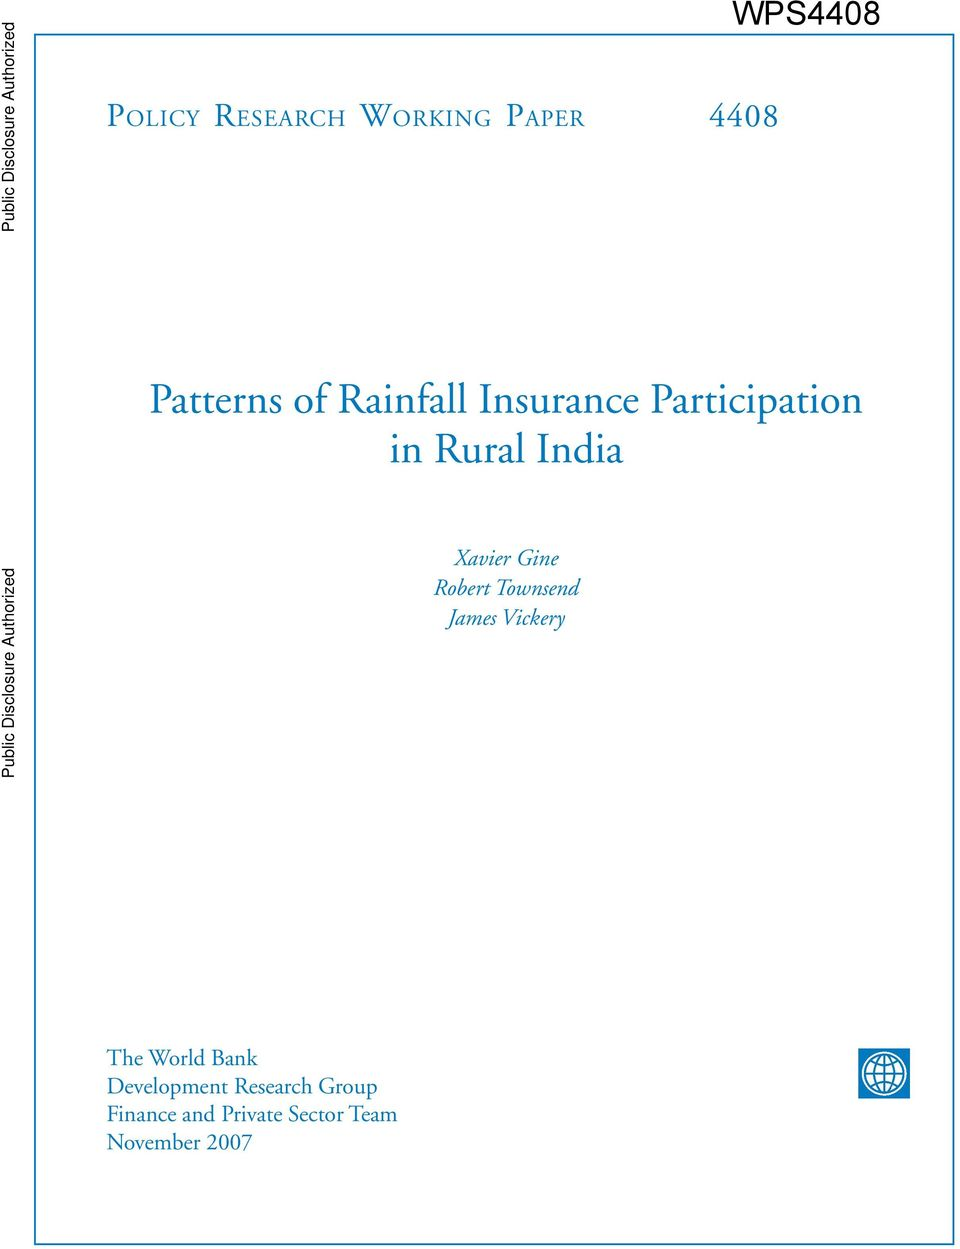 Participation in Rural India Xavier Gine Robert Townsend James Vickery Public Disclosure